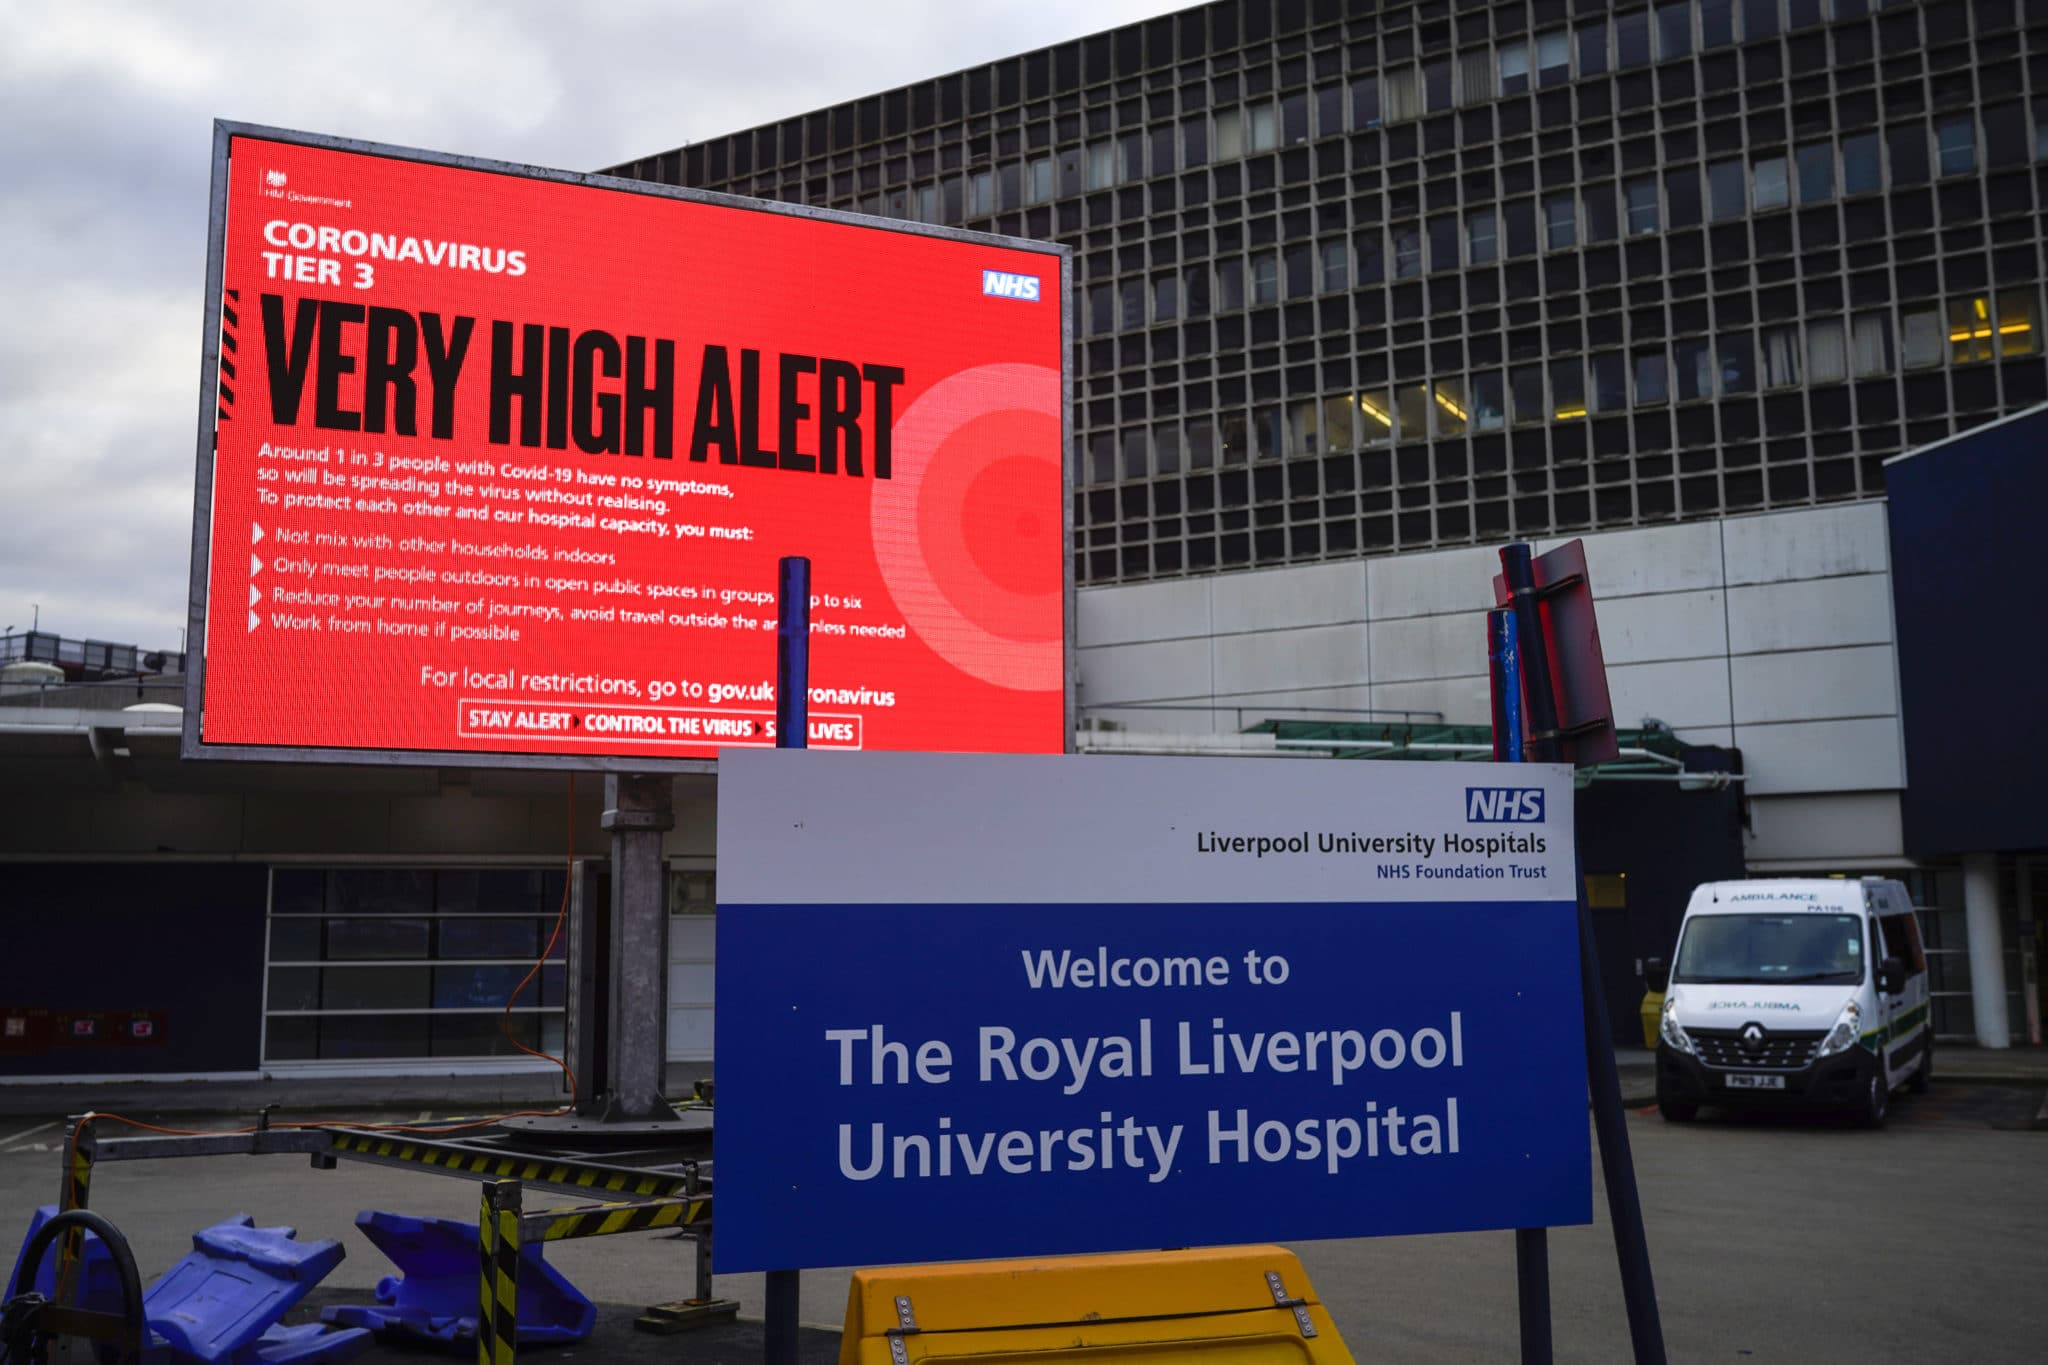 A sign outside the Royal Liverpool University Hospital